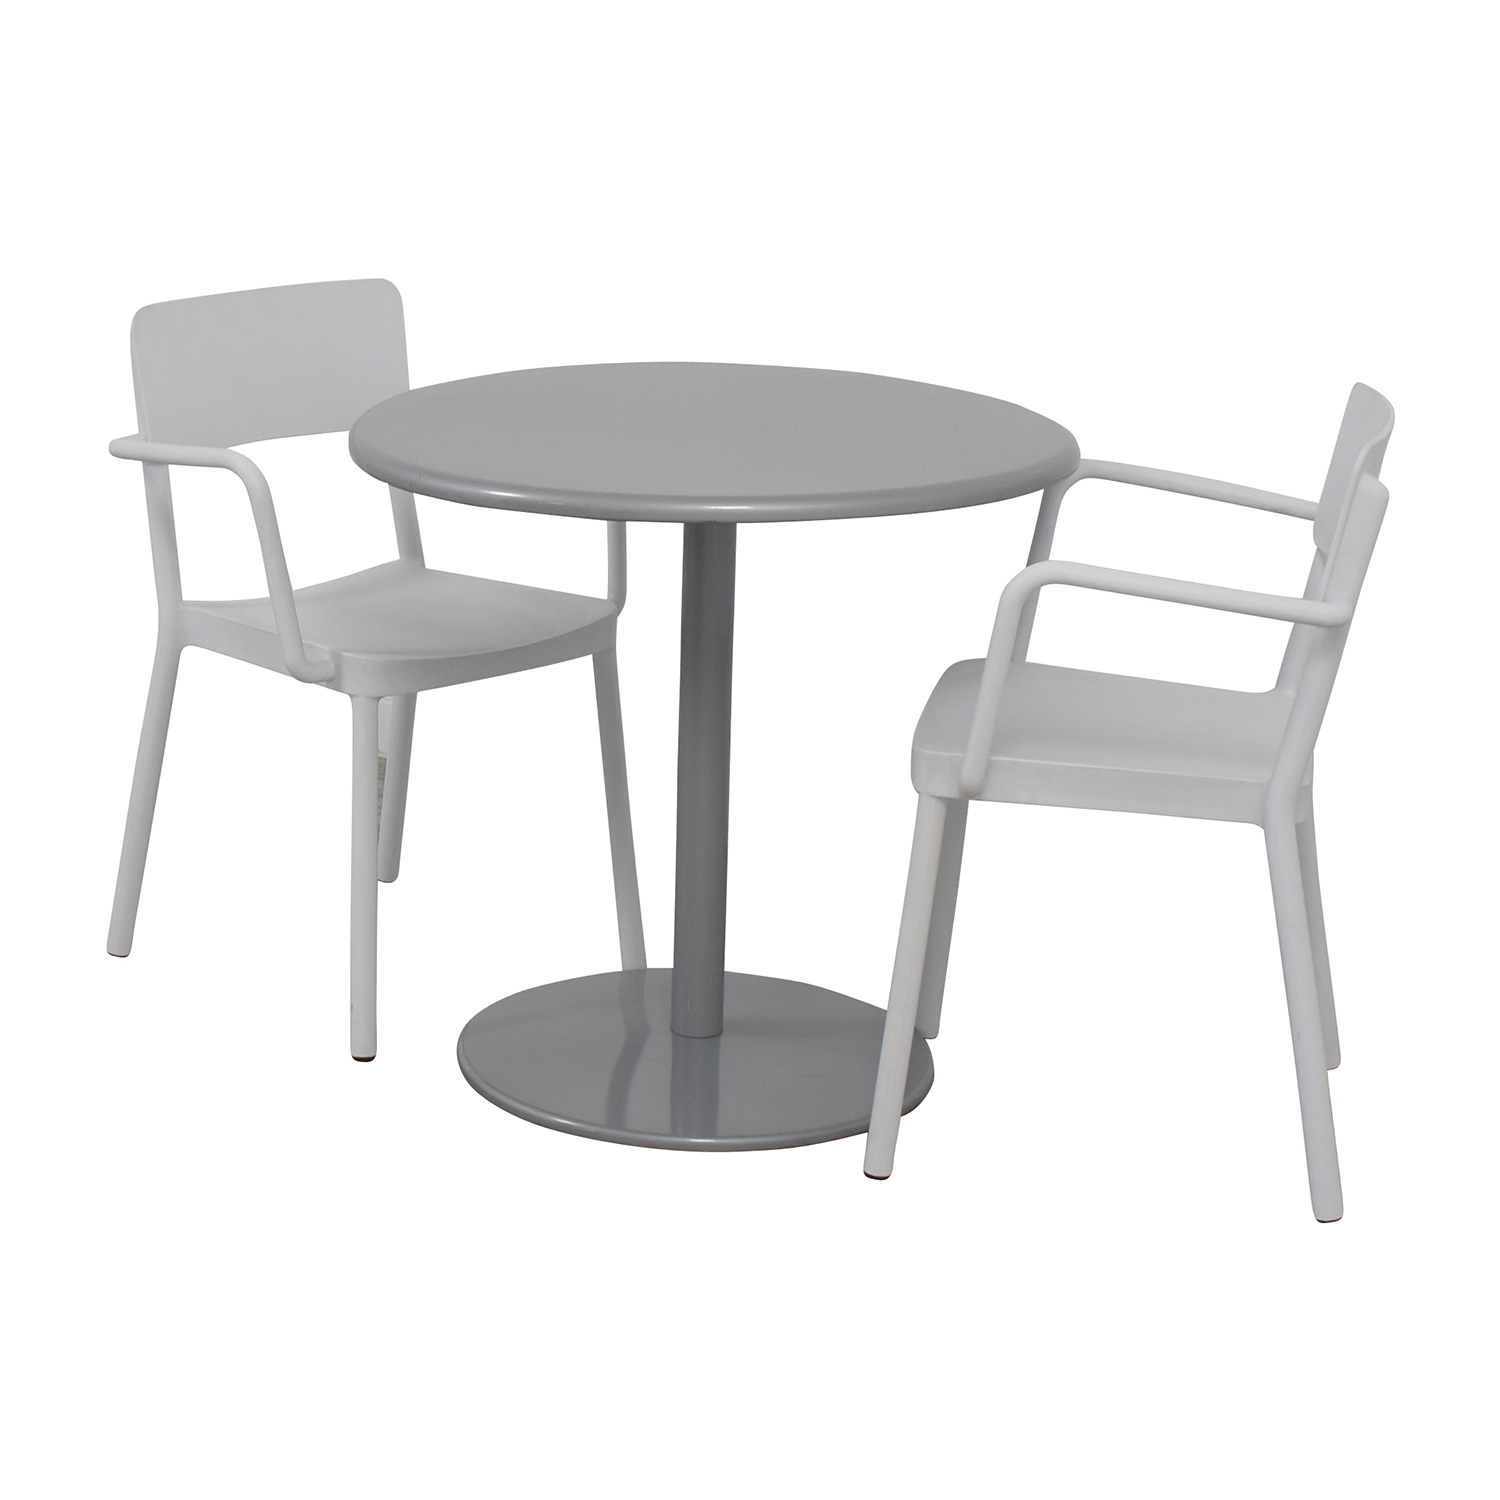 Design Within Reach Bistro Table and Two Chairs sale